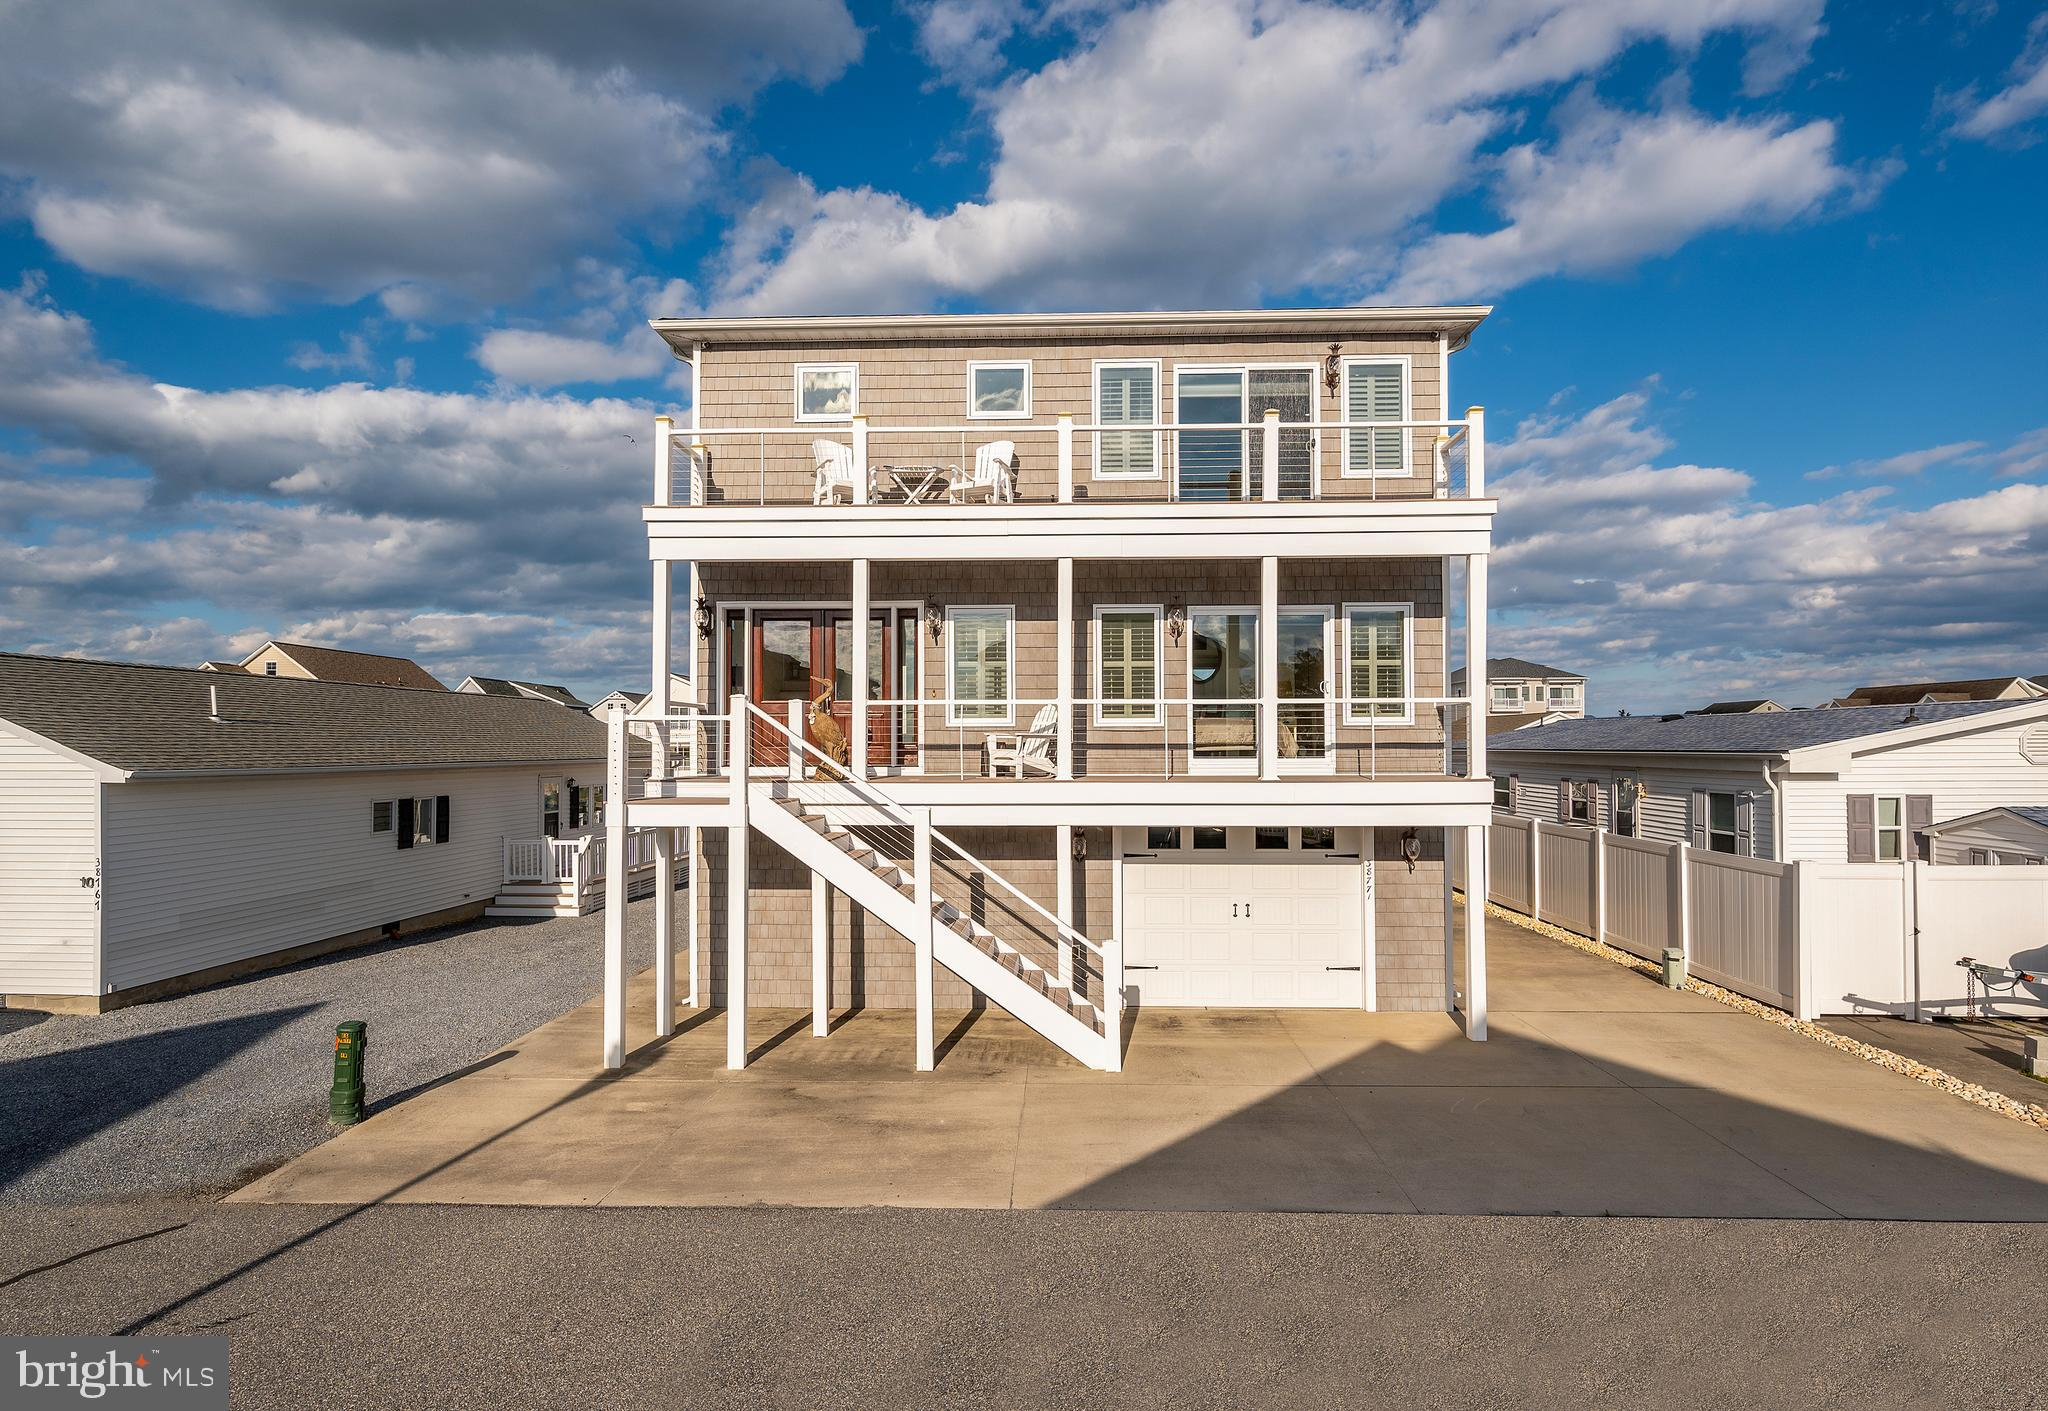 """When only the best will do… Amazing 4 bedroom, 4.5 bath home with your very own deep water boat slip right outside your back door.  From here you are just minutes to all the fun in the sun! This meticulously kept home is all you could want and more!  Featuring amazing water views from every angle, along with views of the Ocean City skyline. The main living area features an inviting open space that encompasses the family, kitchen, and dining area. Open the large sliders and let the outside in from the large waterfront deck.  Enjoy dining al fresco as the sun goes down and shimmers off the water! Cooking will be a joy in the Gourmet kitchen featuring high-end appliances including a  48"""" subzero refrigerator and a wolf professional range with double oven.  High end cabinetry, granite counter tops, and panoramic windows will make cooking a joy! Four generously sized en-suite bedrooms can accommodate all your friends and family comfortably.  Custom tiled showers and spacious baths make you feel like you are in a high end resort.  Three of the four bedrooms feature their own private decks. Love to work out? Spend a little time in the waterfront fitness room to get your beach body ready! You will love the oversized garage that not only has room for cars but all the beach and boating toys as well. No detail was overlooked, from the high end Hinkley pineapple exterior lights, plantation shutters, security system, elevator, whole house generator, owned solar panels, private dock with a boat lift, sea doo lift, an outside mister for those hot days, and more!  This maintenance free home, in the highly sought after waterfront community of Cape Windsor,  is ready for your enjoyment."""